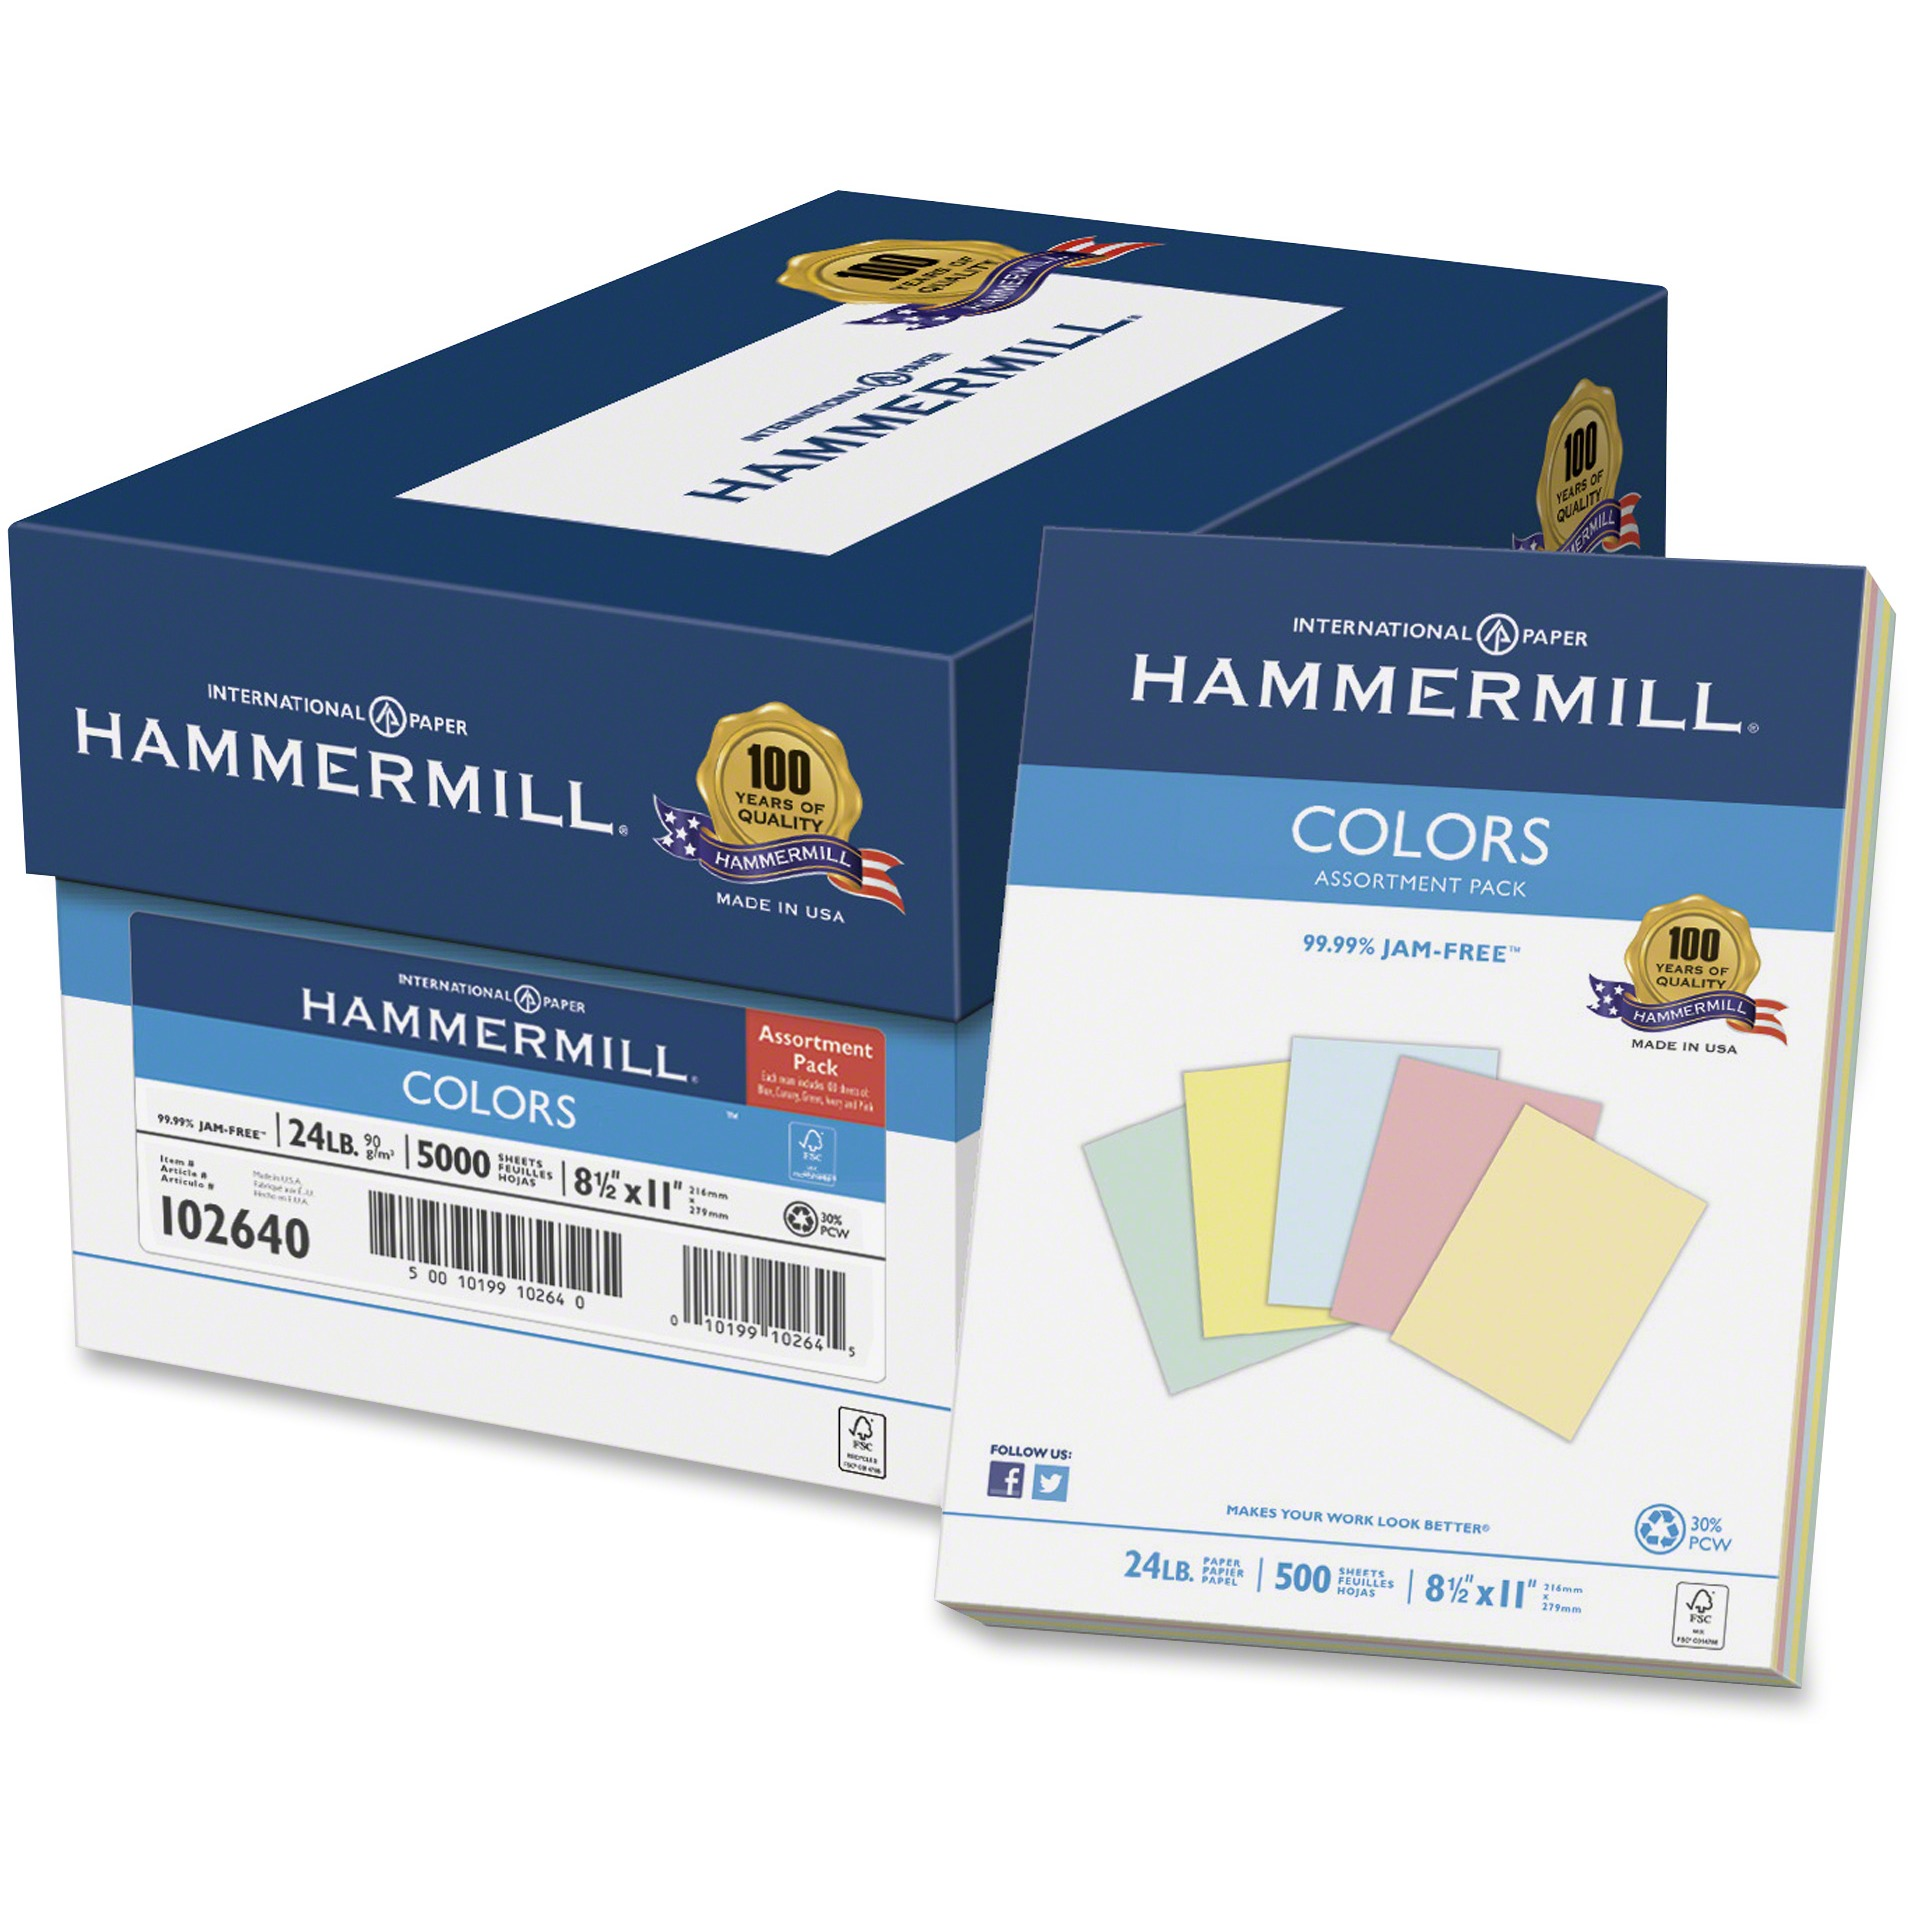 Hammermill, HAM102640, 102640 Colors Assortment Paper Pack, 500 / Ream, Blue,Canary,Green,Ivory,Pink